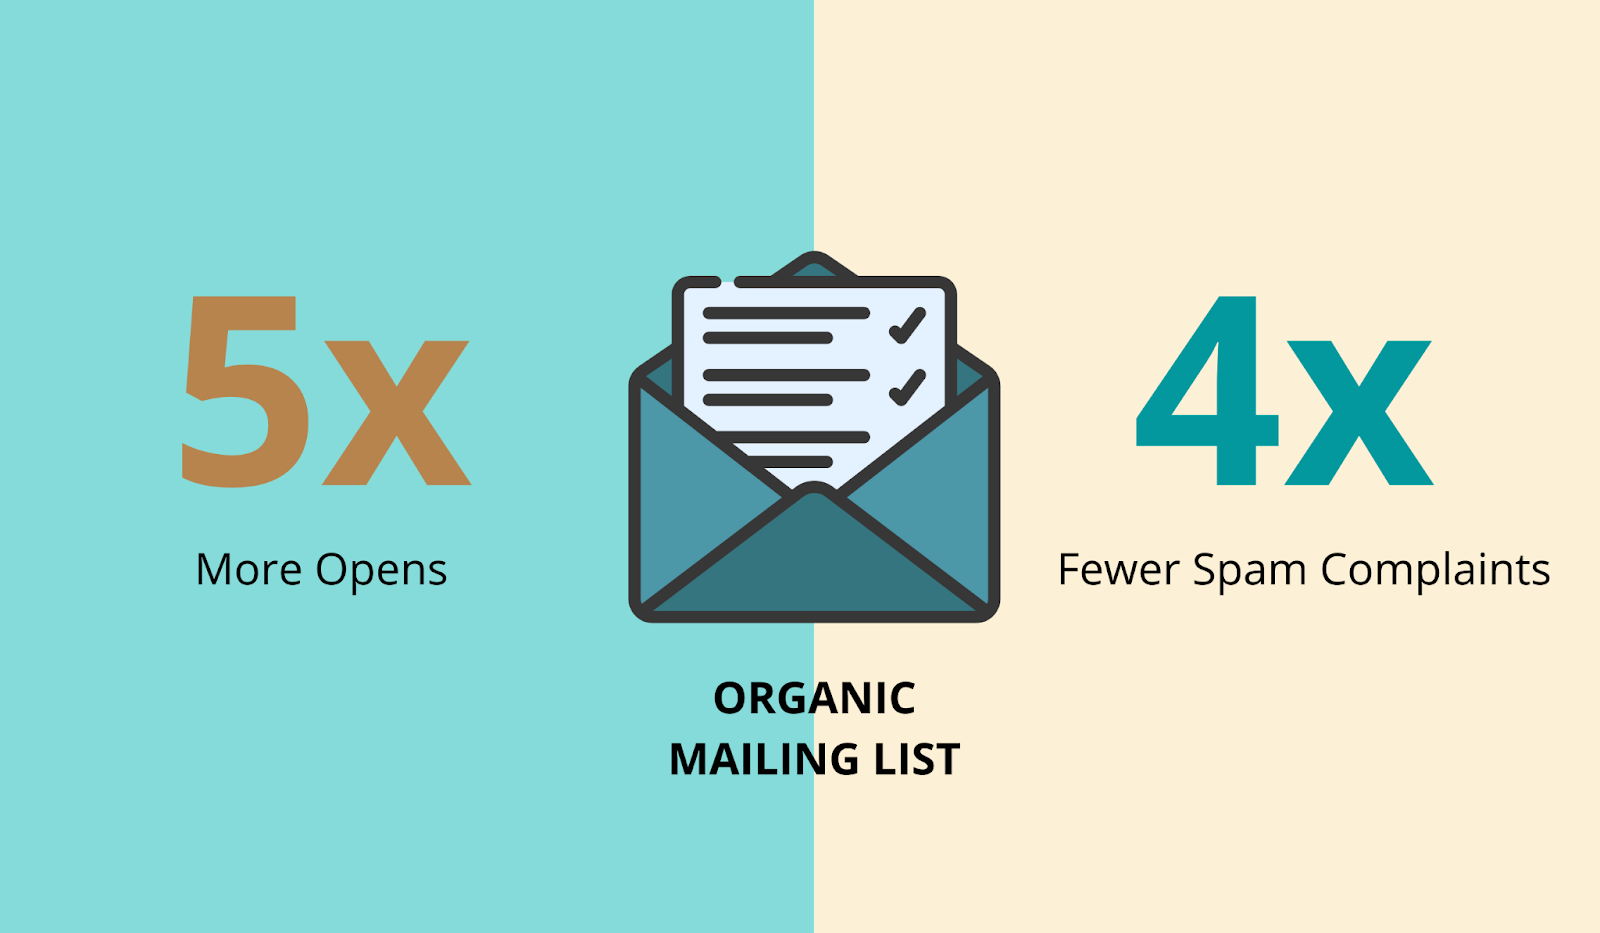 Organic mailing lists get higher open rates and less spam complaints